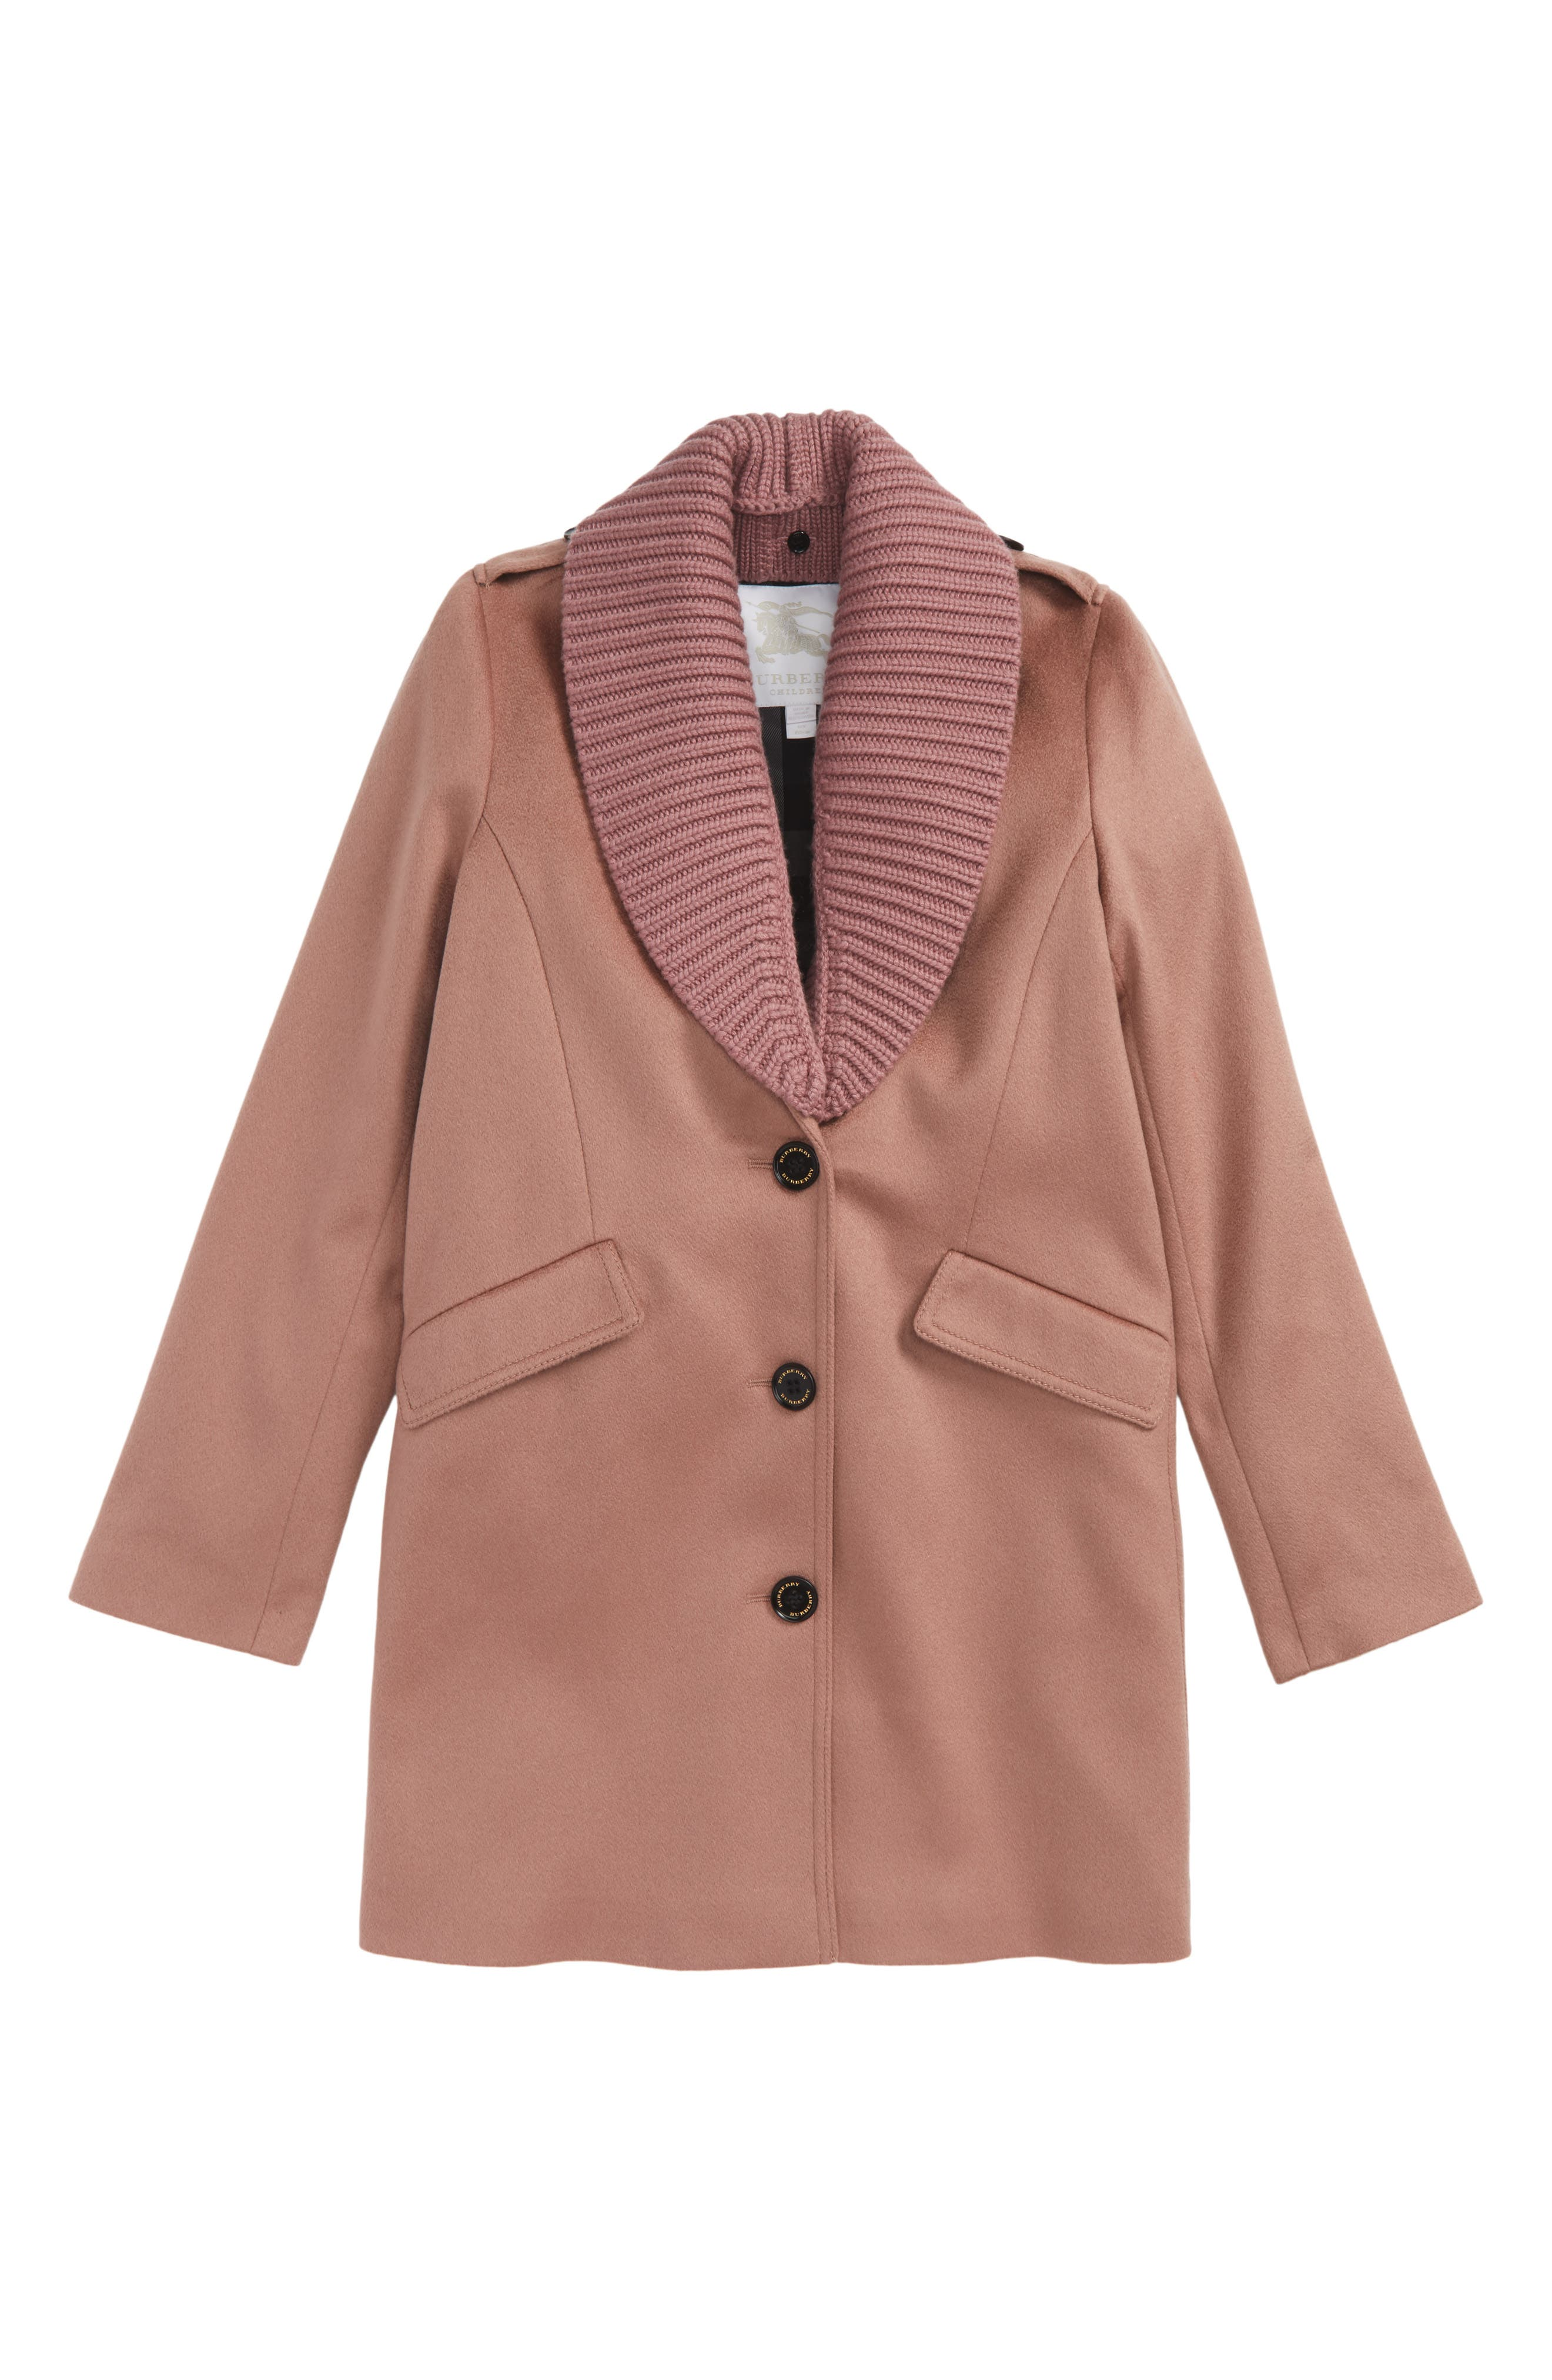 Alternate Image 1 Selected - Burberry Bridget Shawl Collar Cashmere Coat (Little Girls & Big Girls)